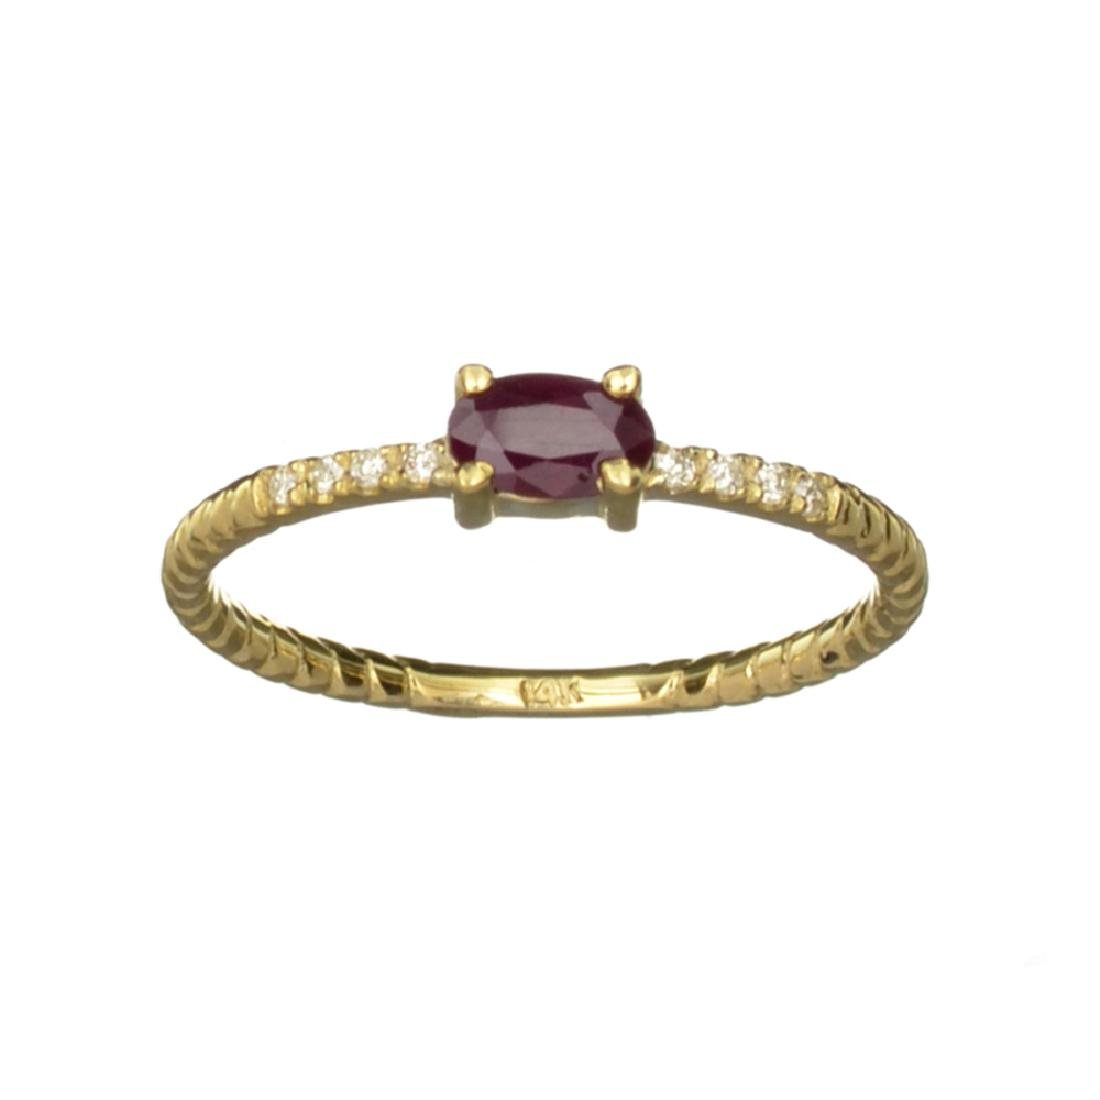 APP: 0.6k Fine Jewelry 14KT Gold, 0.31CT Ruby And